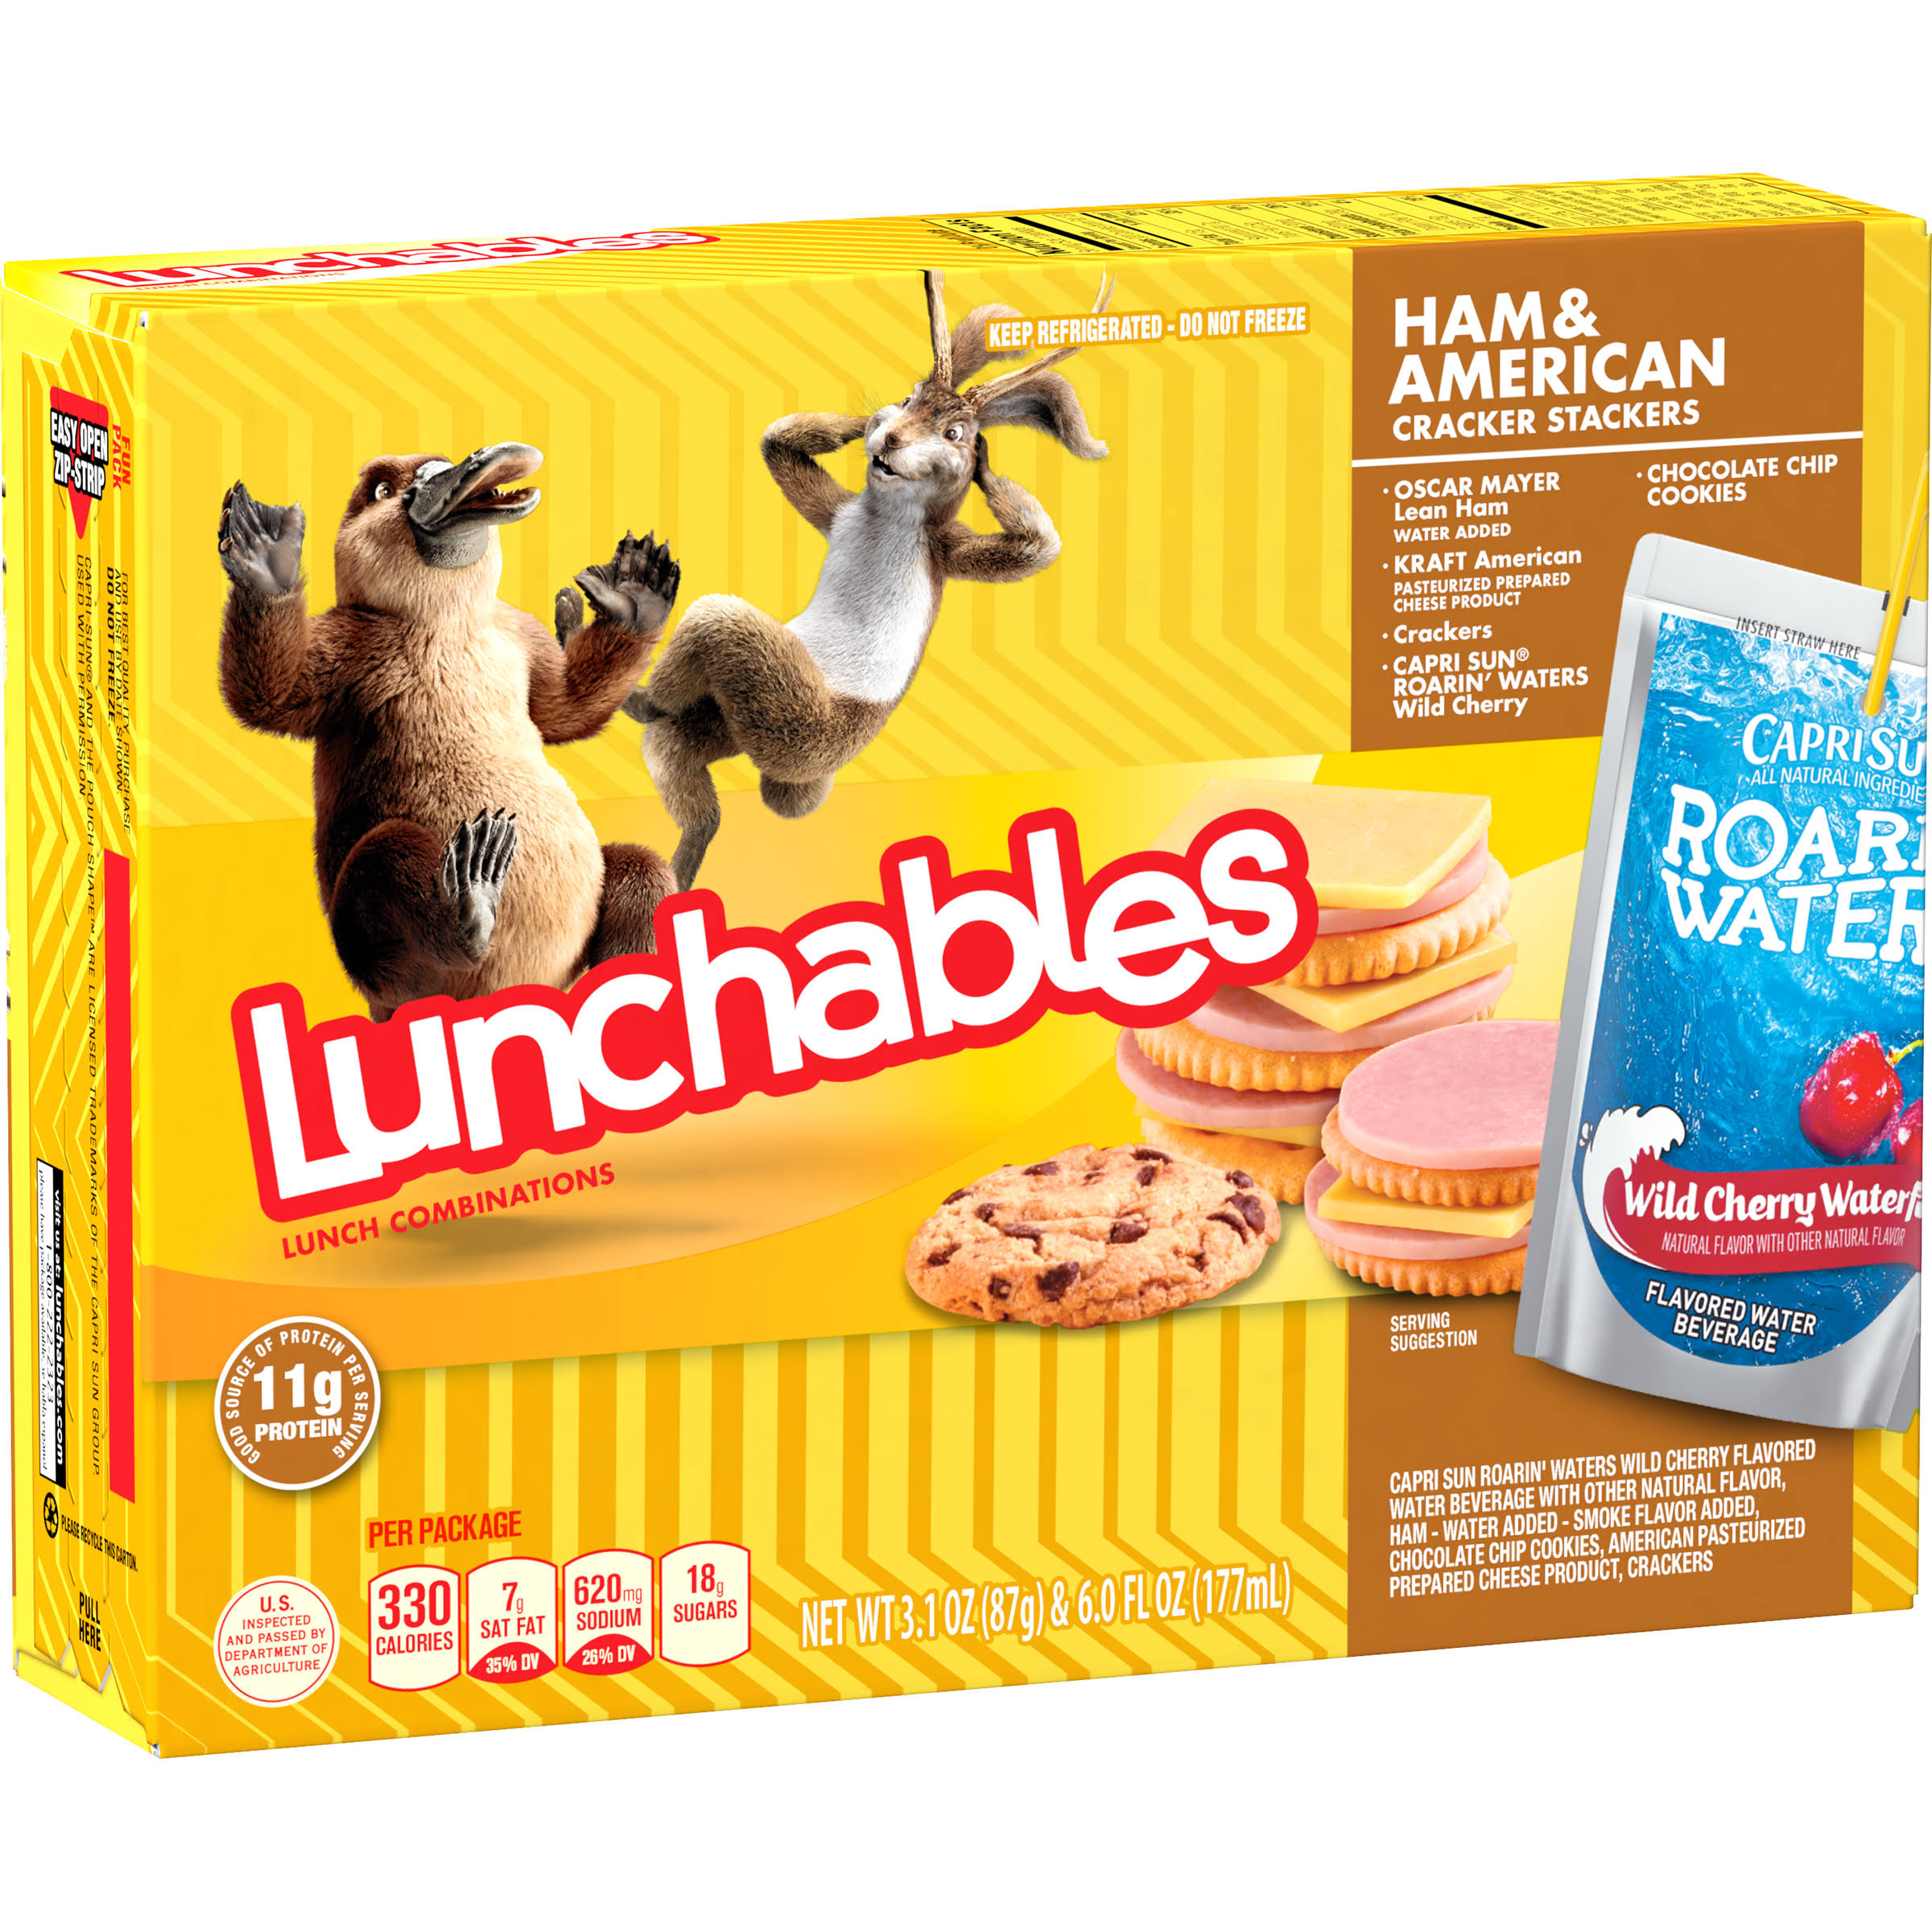 Lunchables Lunch Combinations, Ham & American, Cracker Stackers